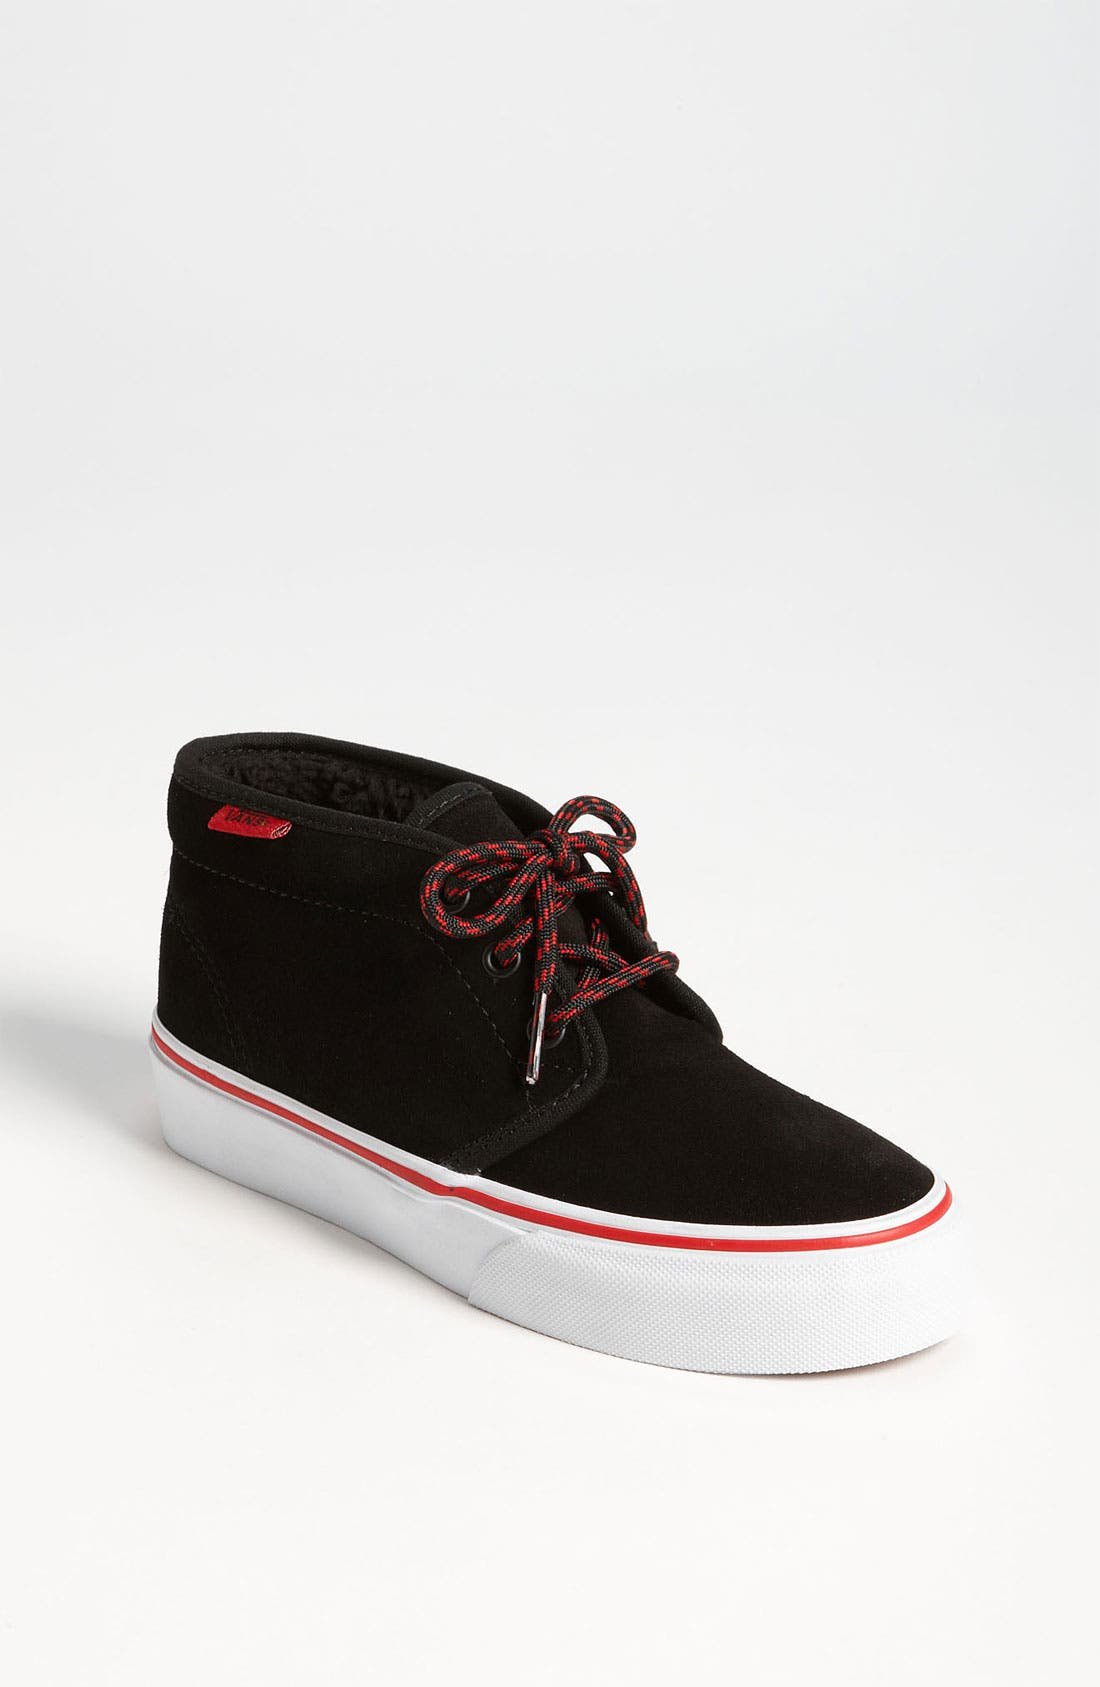 Alternate Image 1 Selected - Vans Chukka Boot (Toddler, Little Kid & Big Kid)